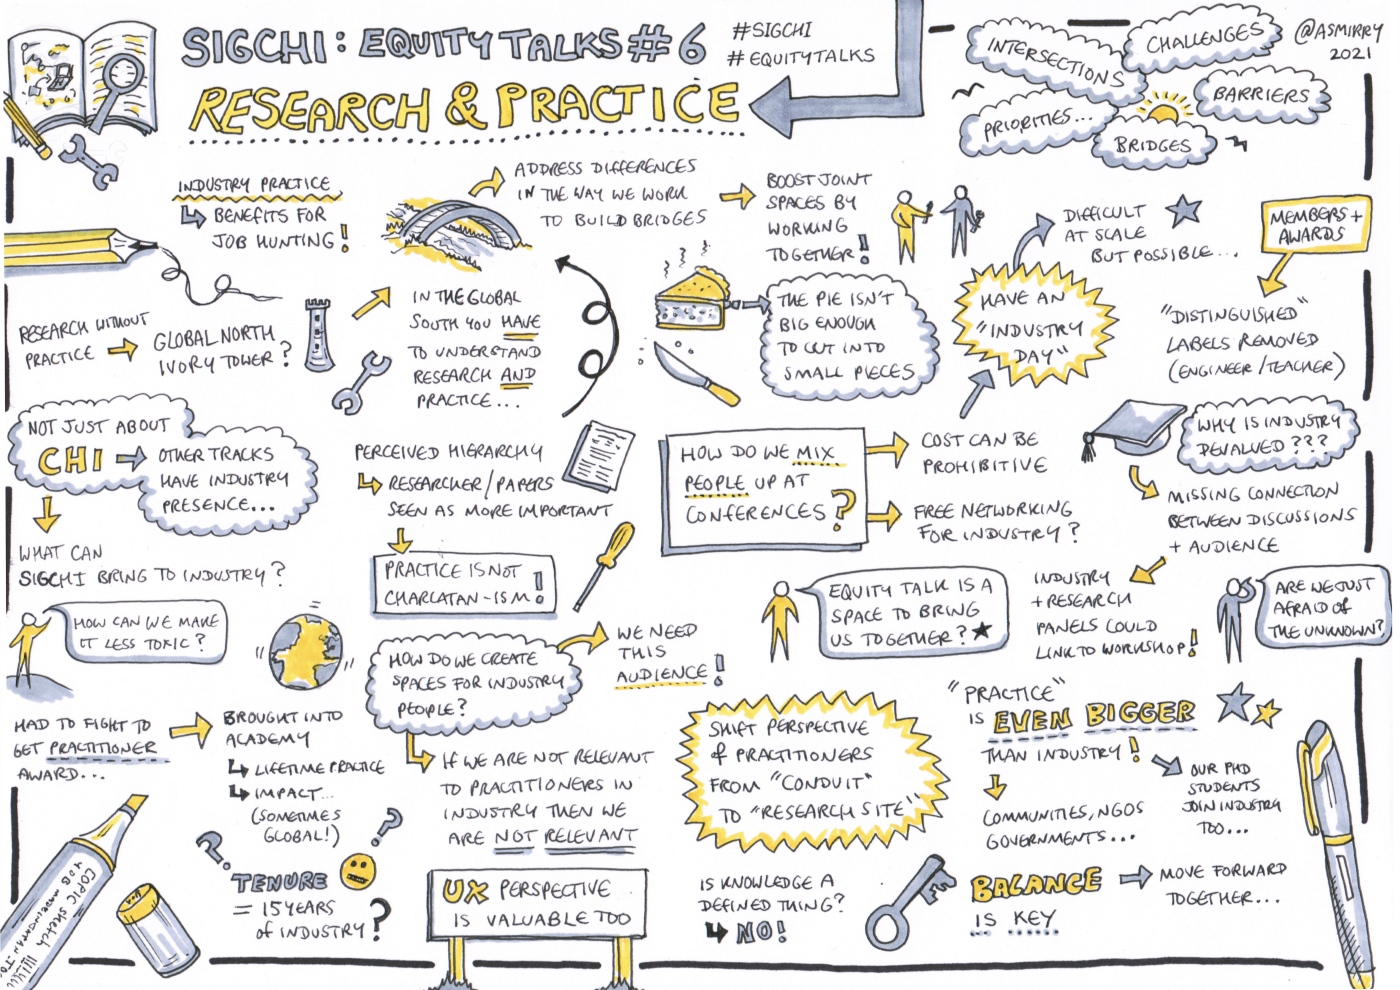 Sketchnotes for Equity Talks #6: Research and Practice. A mixture of small sketches and text with yellow highlights summarising the discussion. Prominent elements include: (1) How to make space for Industry?, (2) What SIGCHI brings to Industry?, (3) How to mix people up in conferences?, (4) Moving forward together!